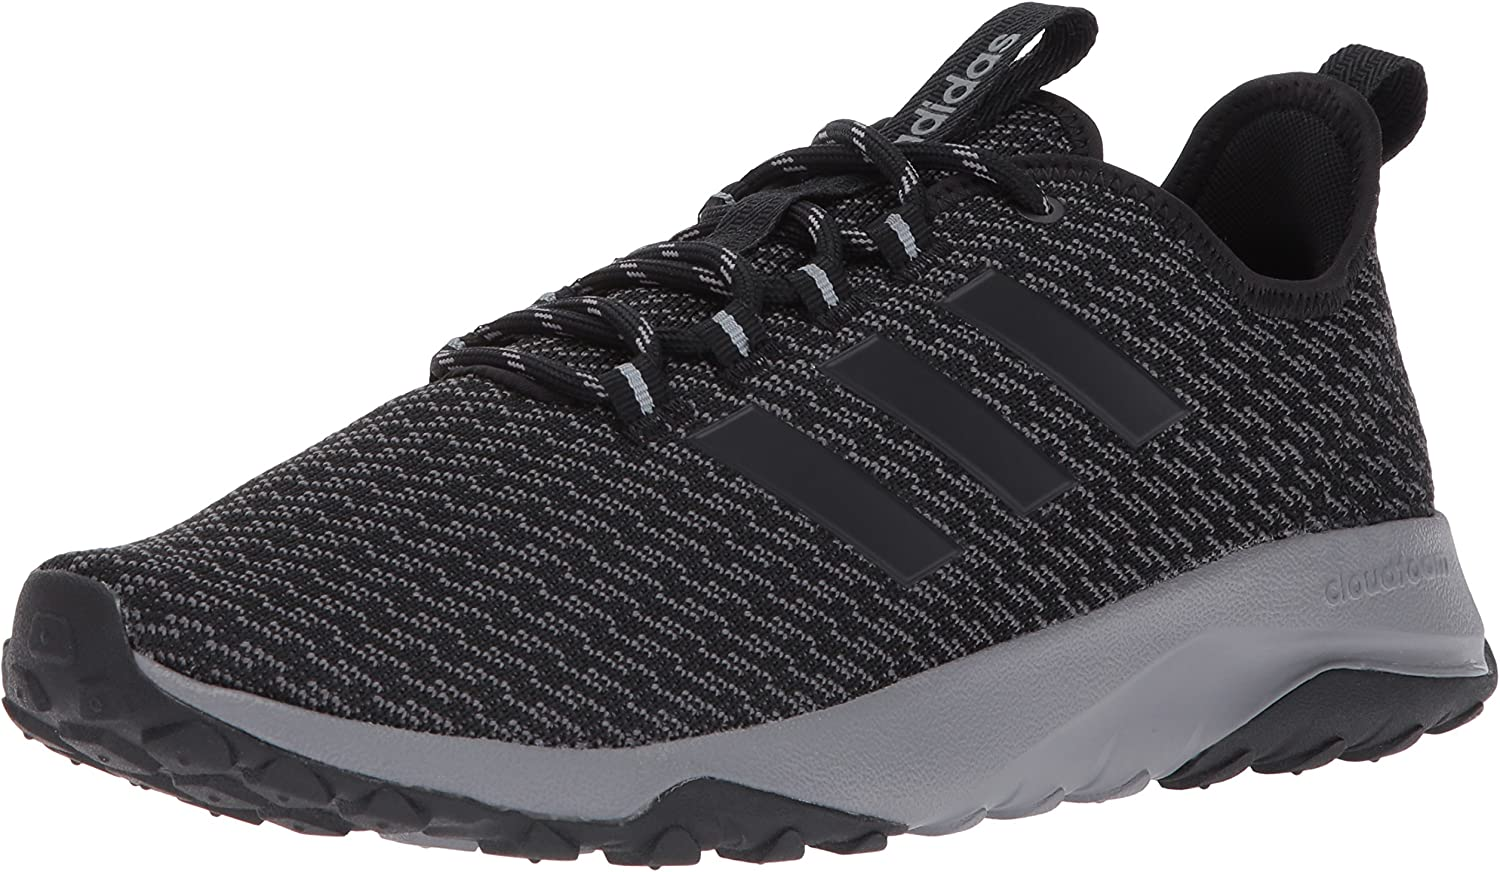 adidas Max 81% OFF Men's Cf Courier shipping free Superflex Running Trail Shoe Tr